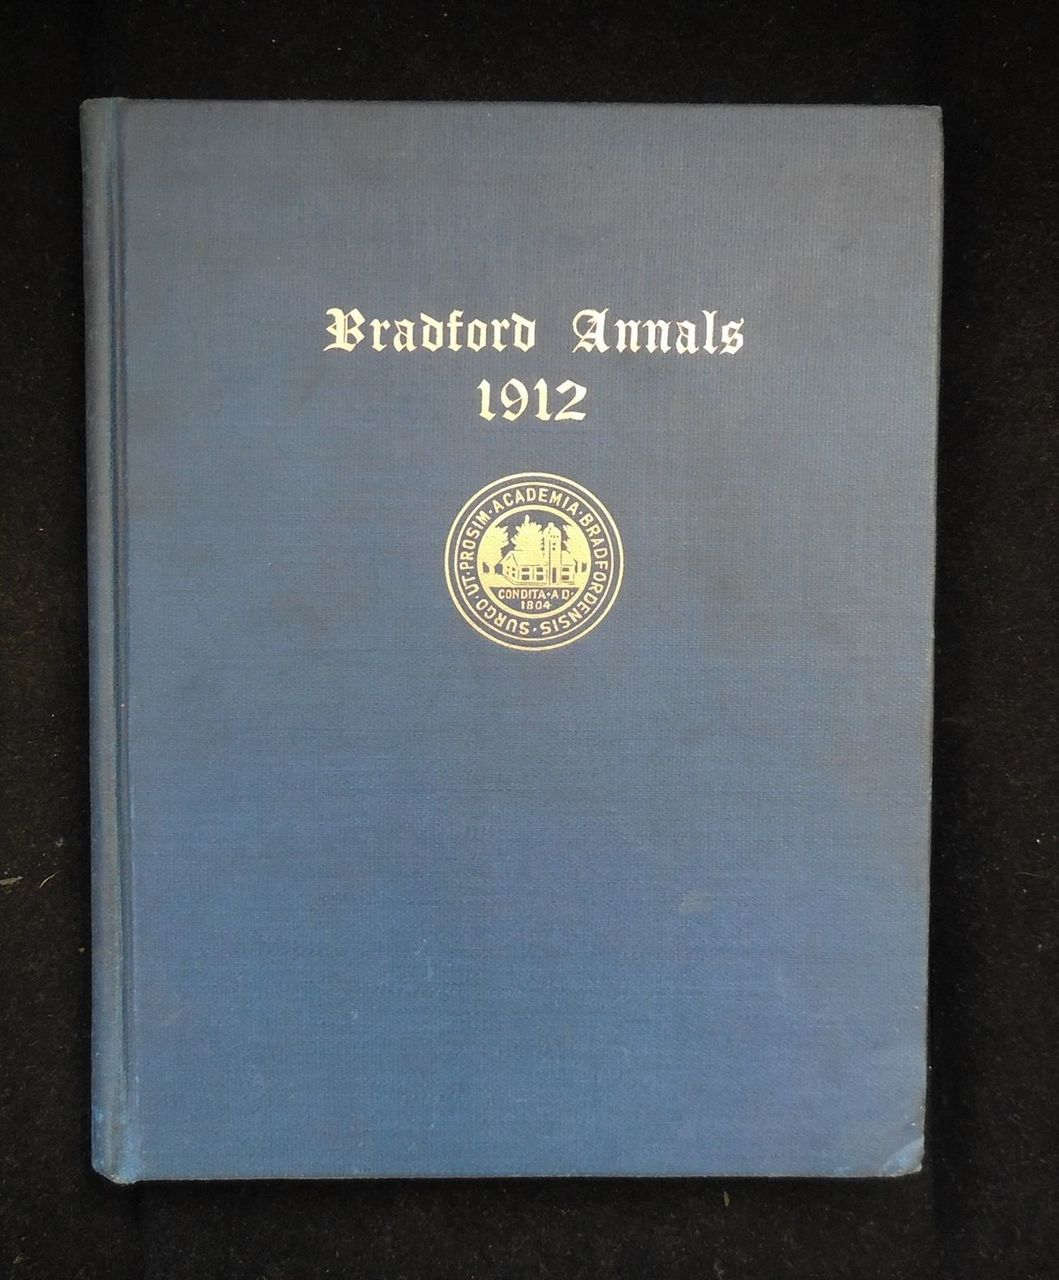 BRADFORD ANNALS 1912, the members of Bradford College, illustrated 1912 annals.